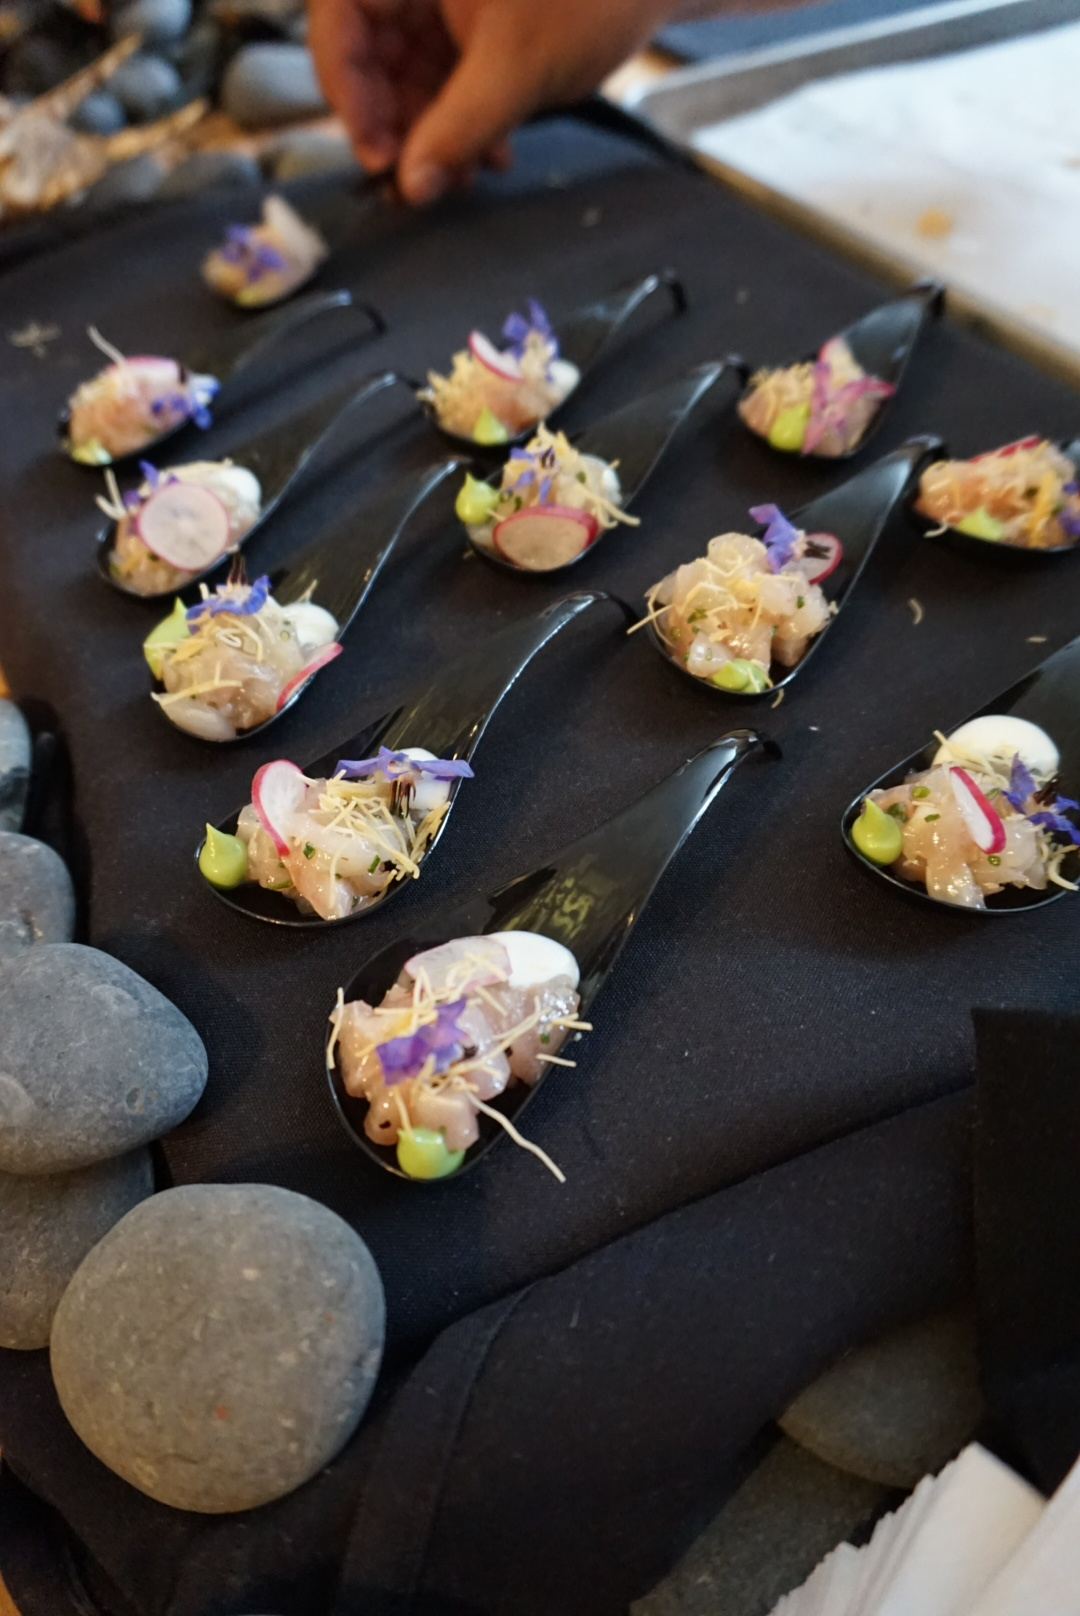 Kona kampachi tartar with shallots, chives, avacado puree, radish, lemon aioli and honey crumble.